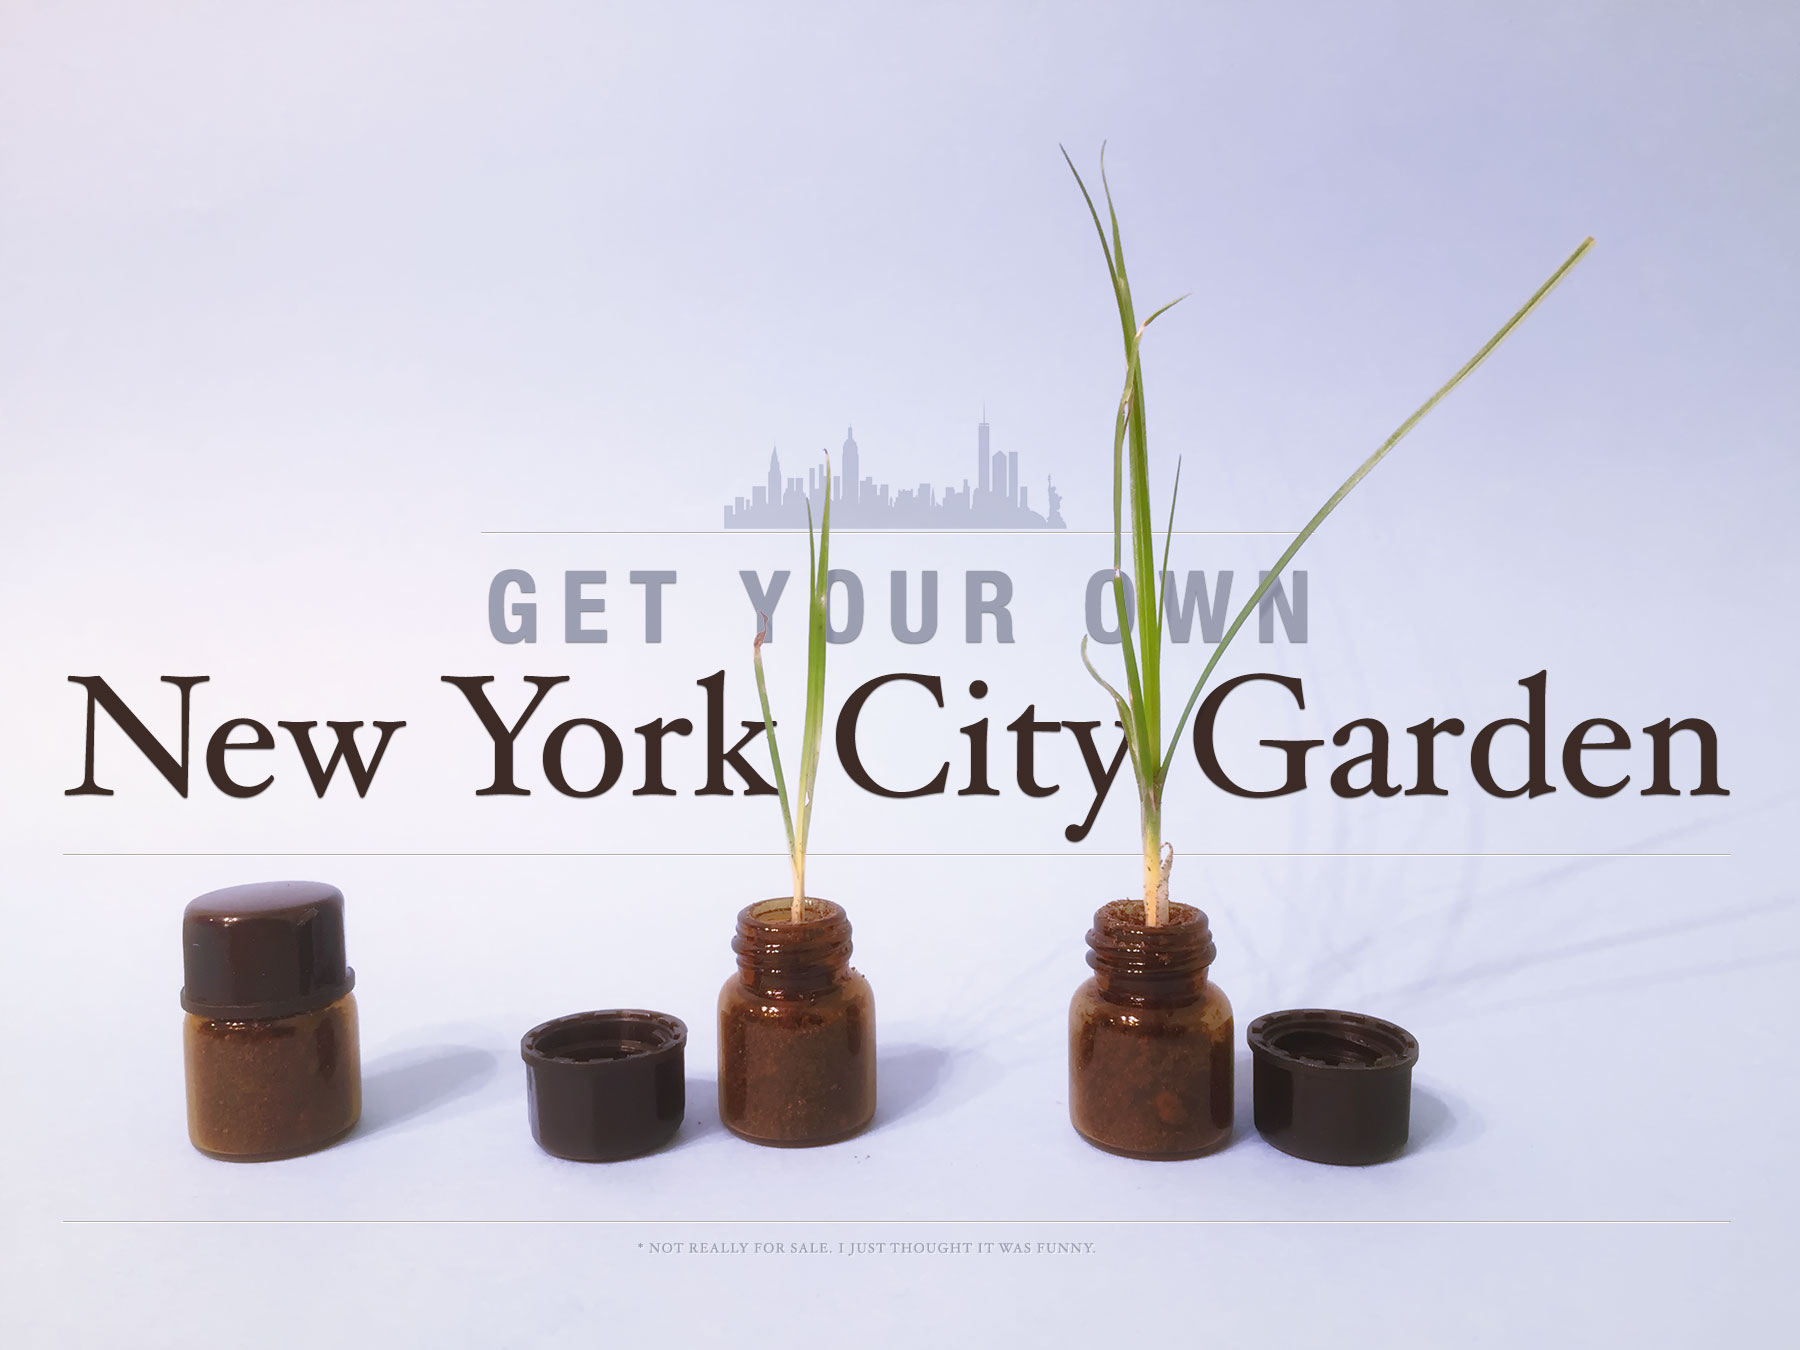 Own Your Own New York City Garden